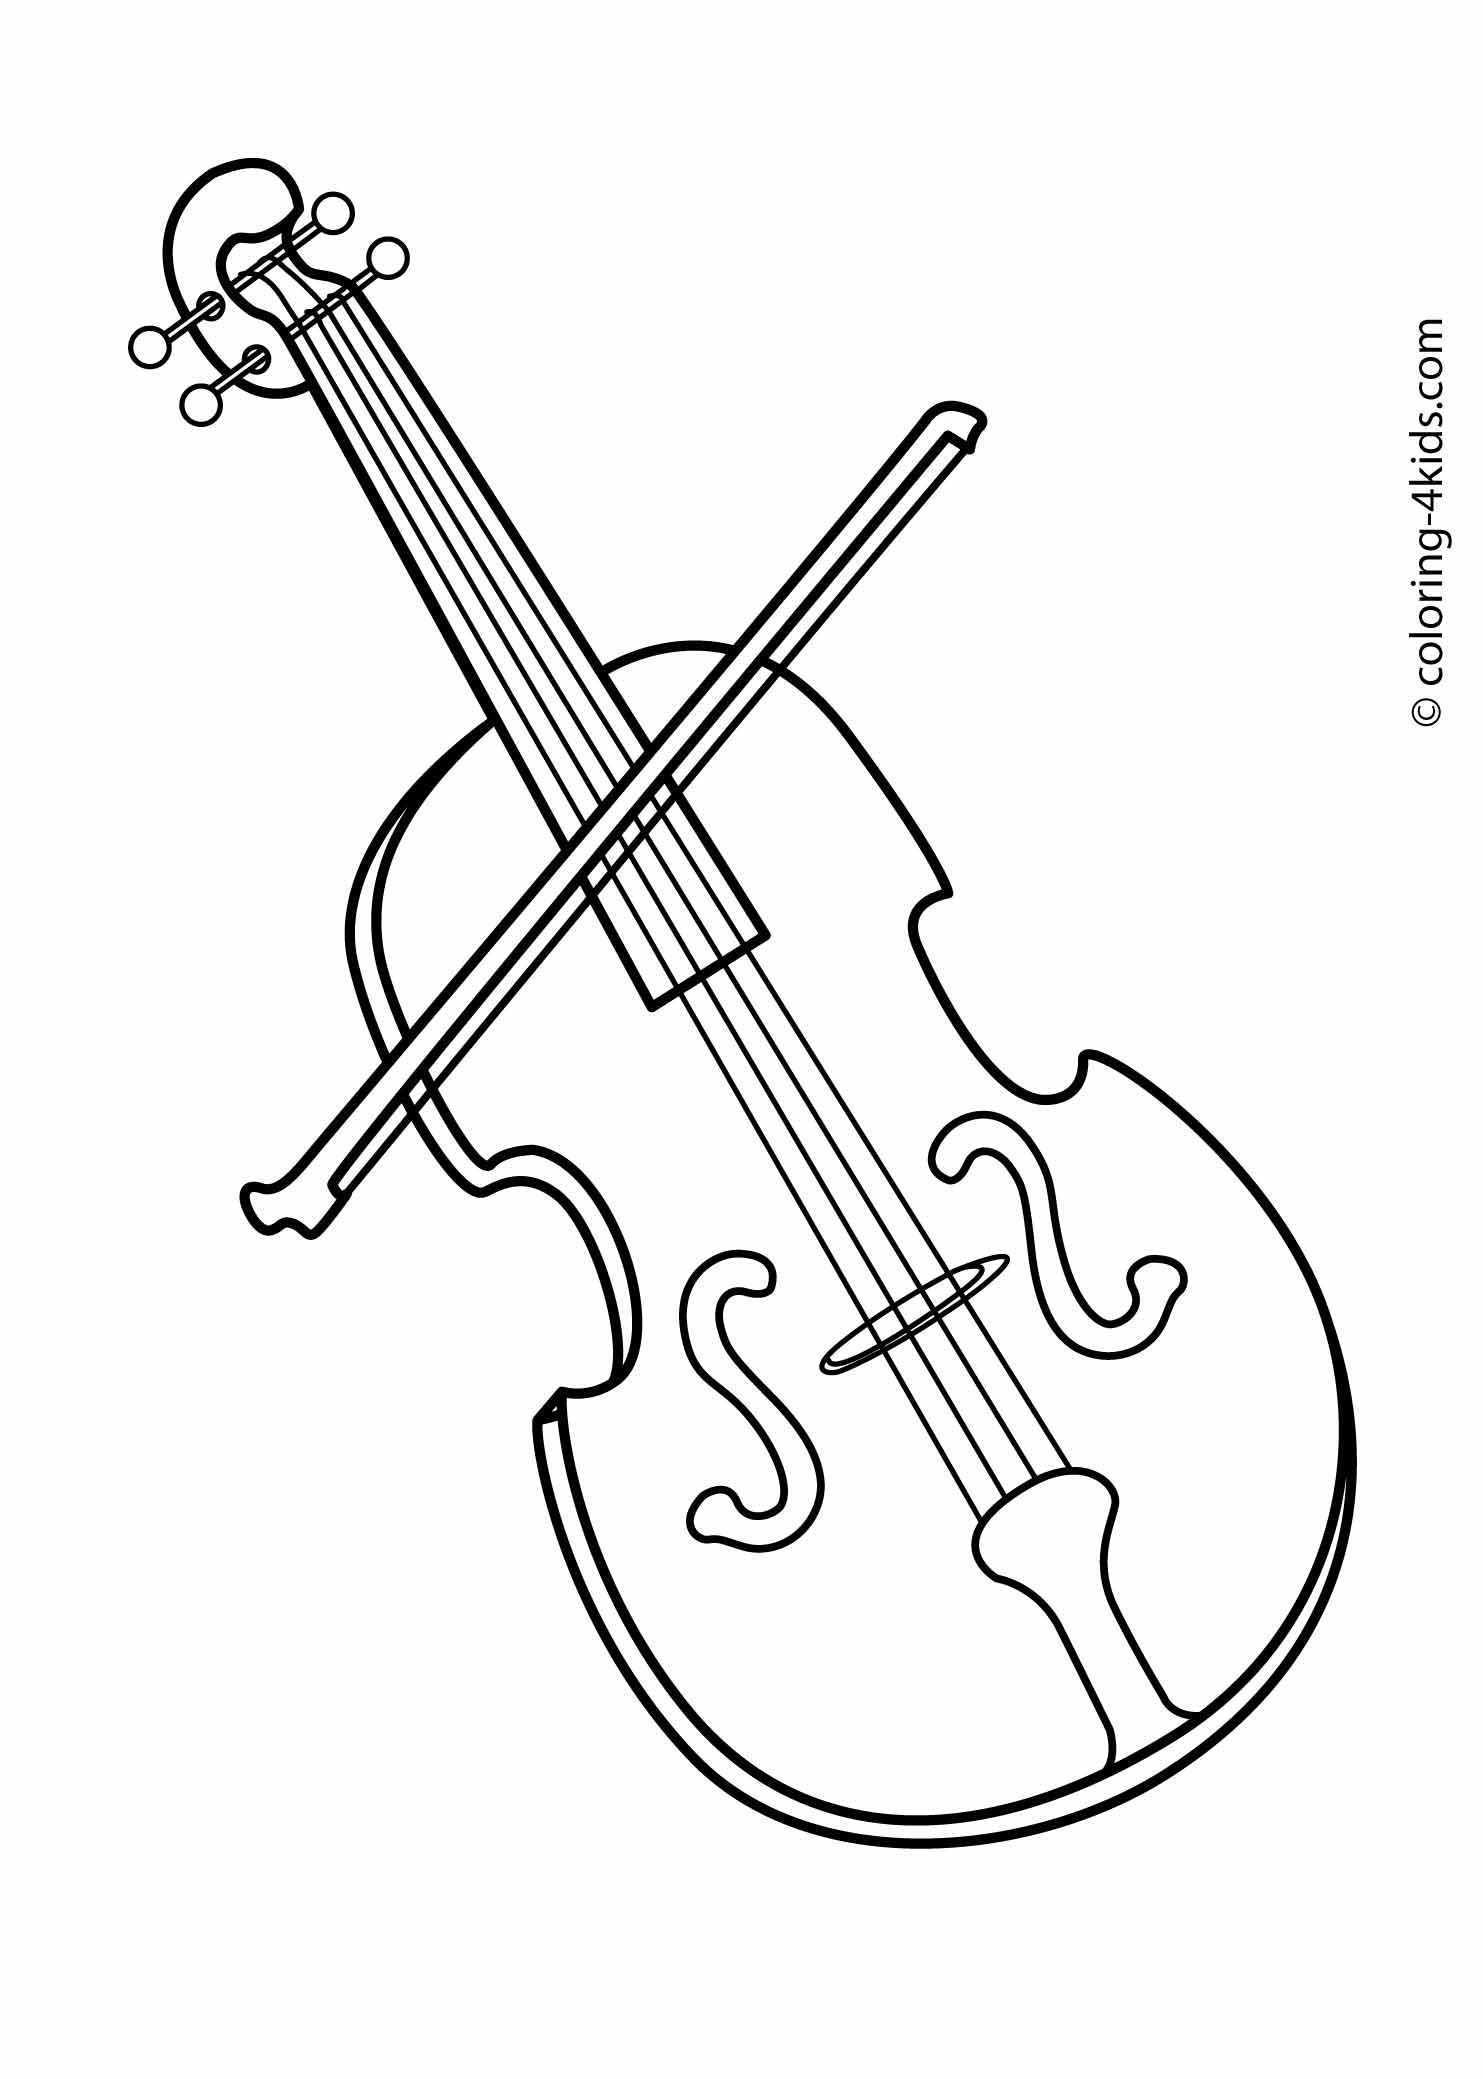 Violin musical instruments coloring pages | Coloring pages | Pinterest